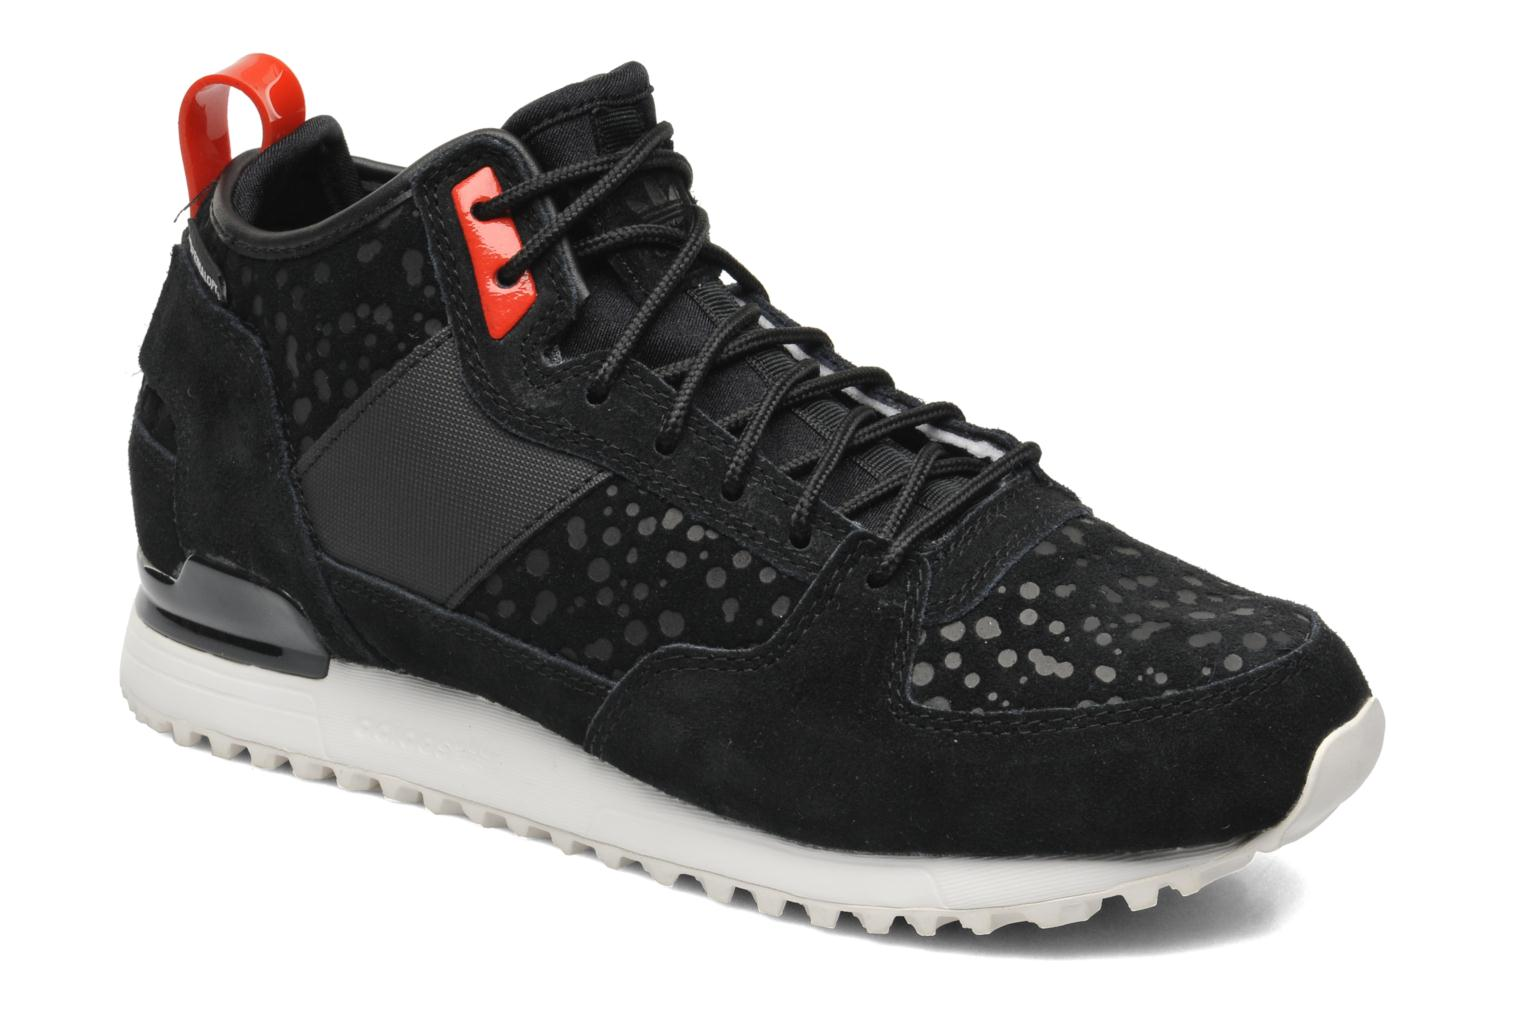 Adidas Military Trail Runner Shoes